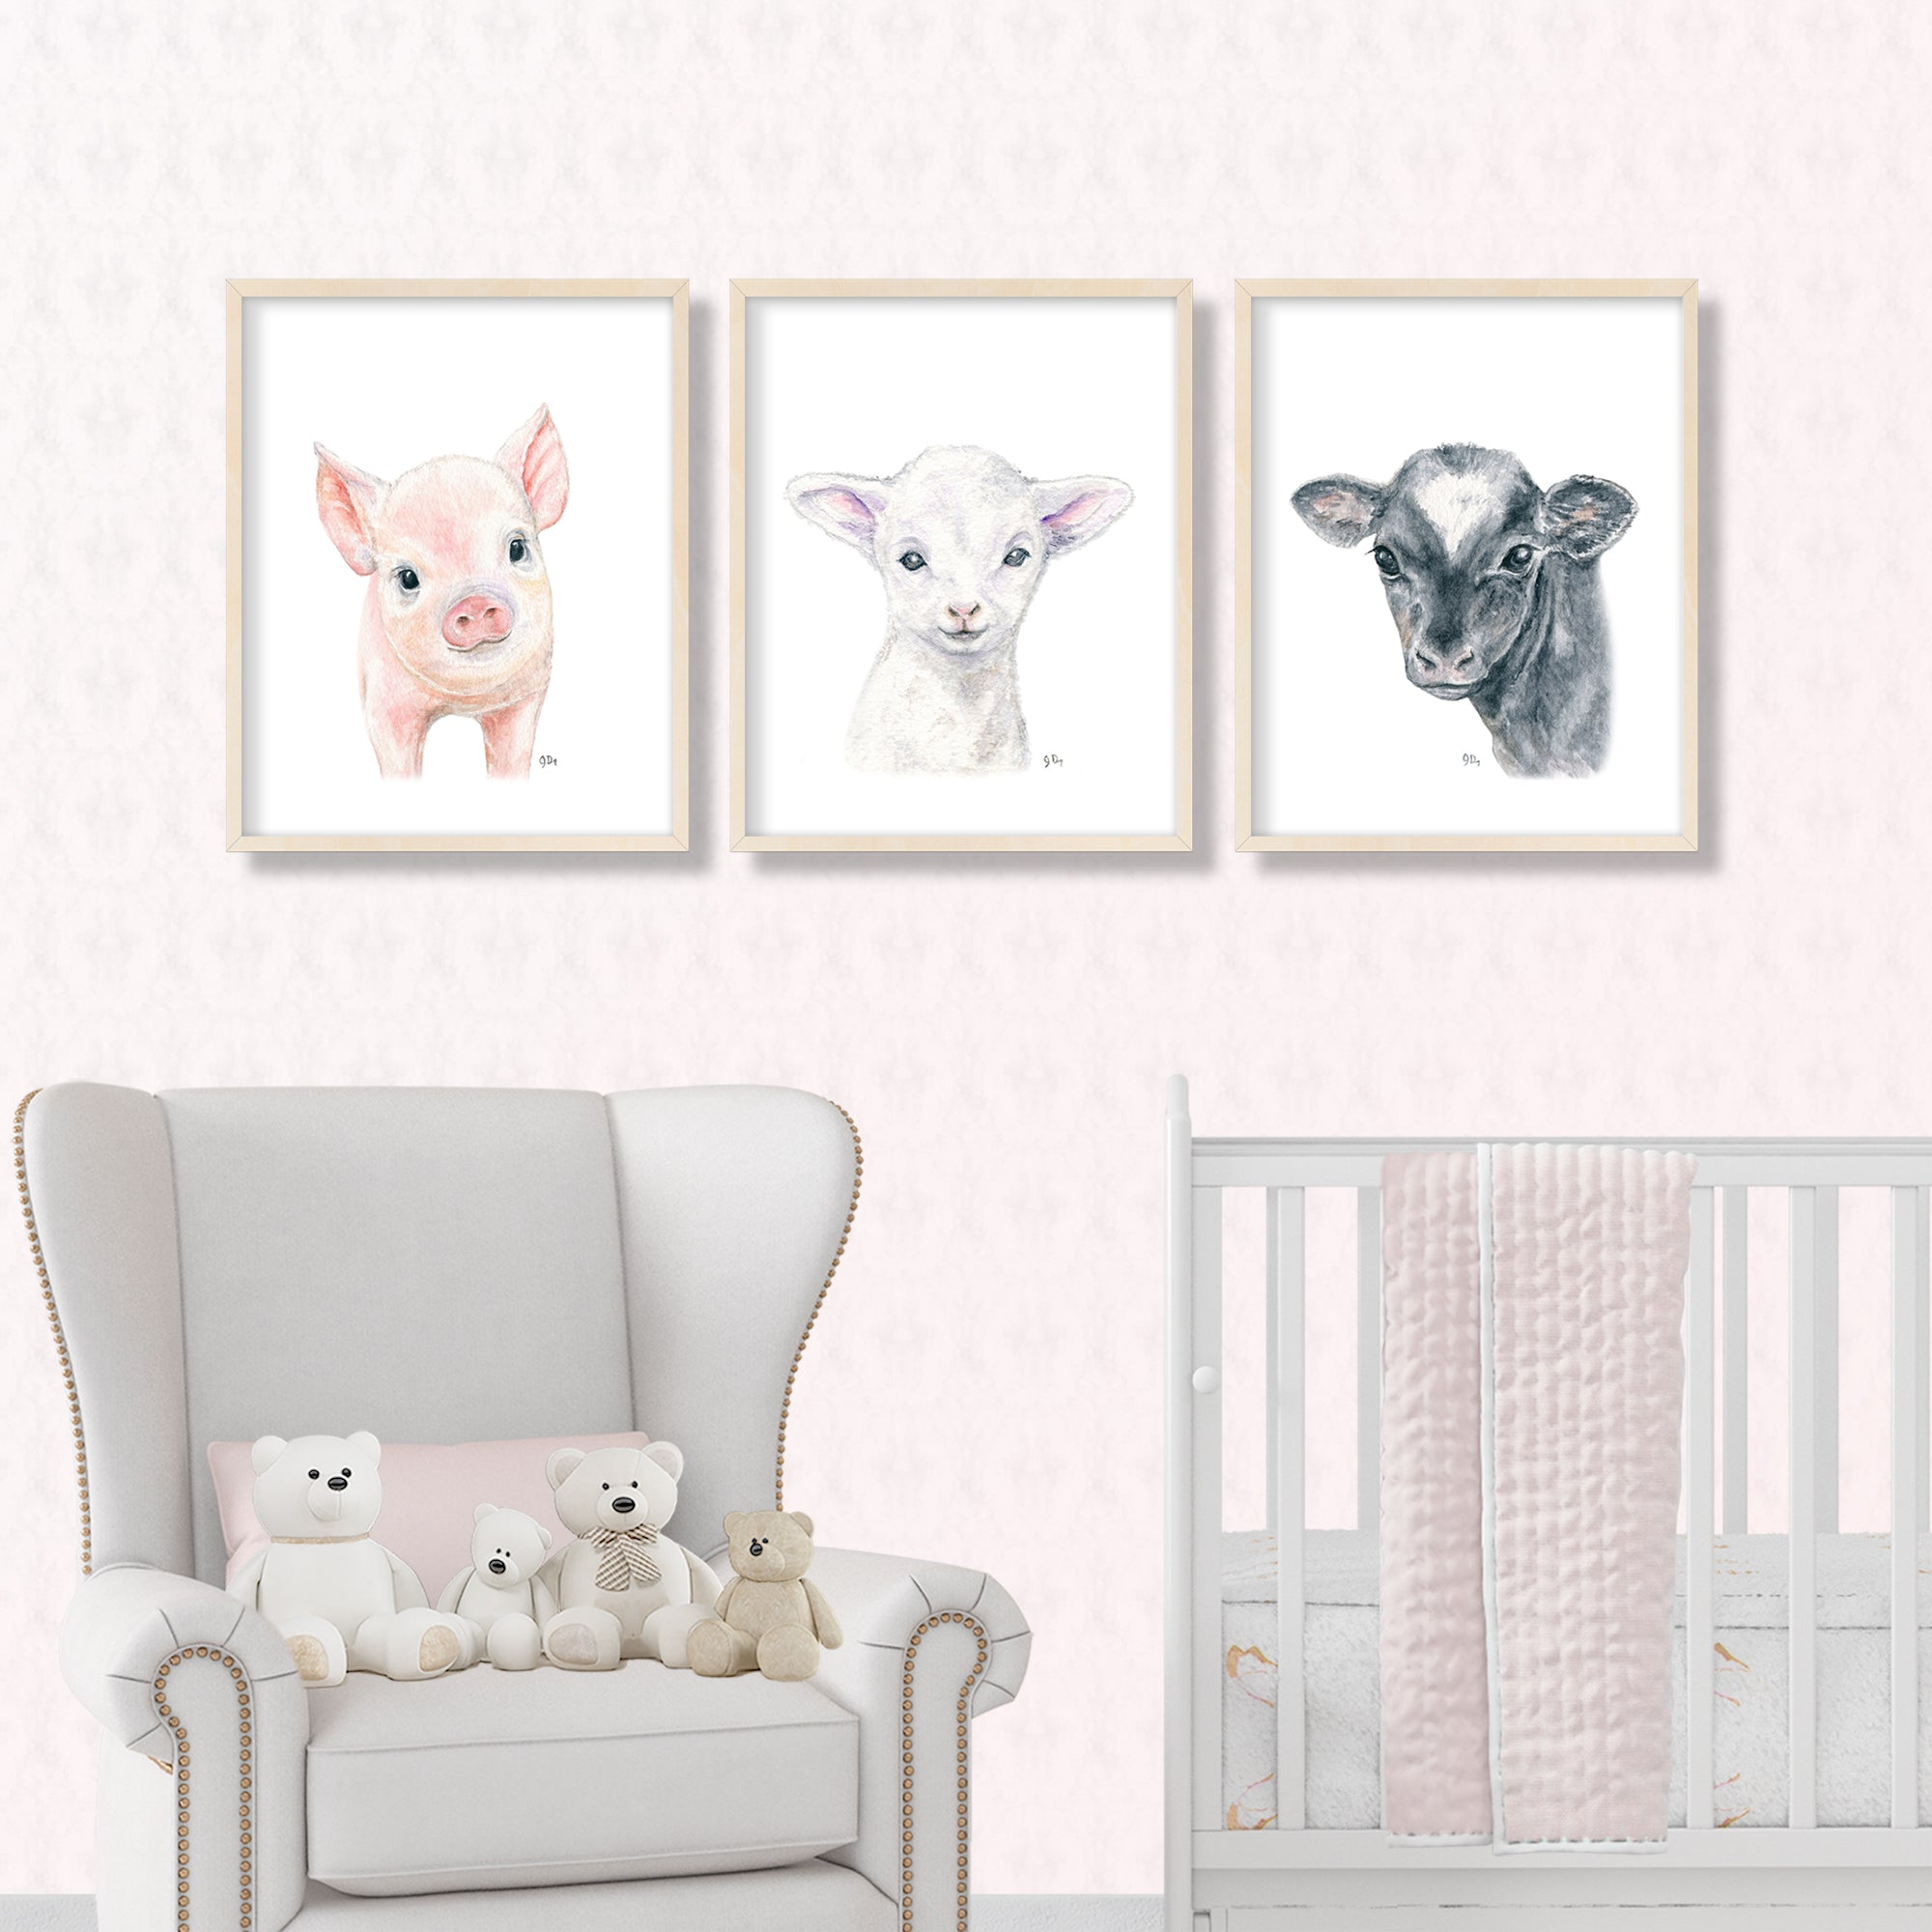 farm barnyard nursery playroom art decor pig lamb cow